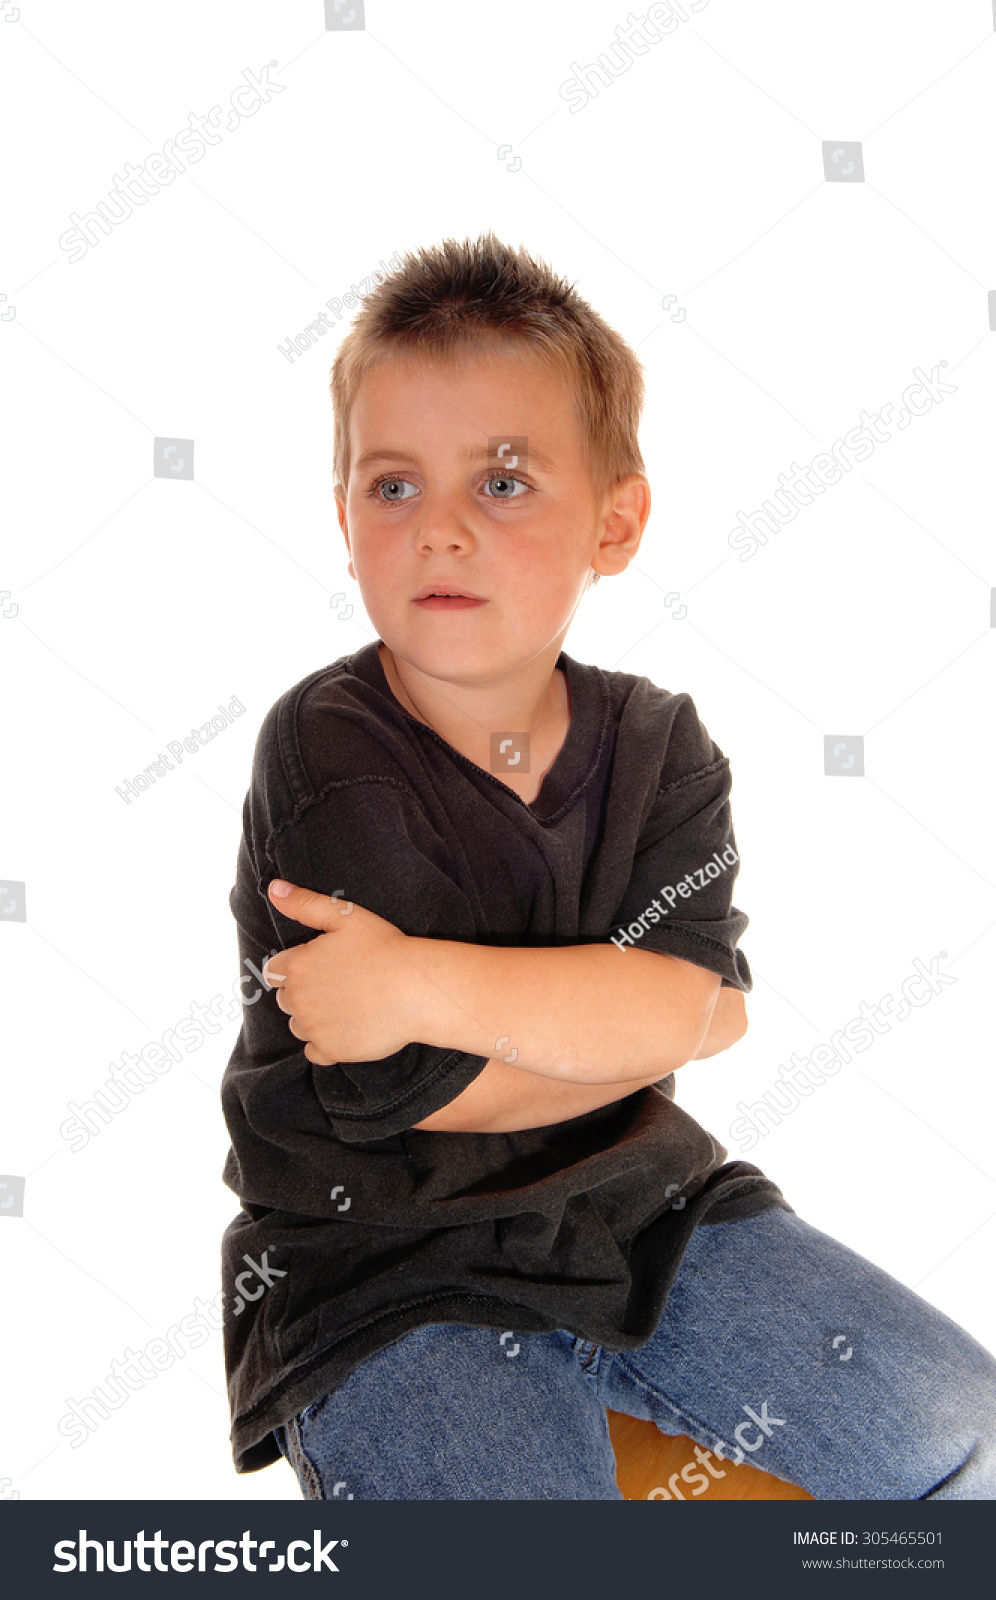 Black child sitting in chair - A Beautiful Young Boy Sitting On A Chair In A Black T Shirt Hugging